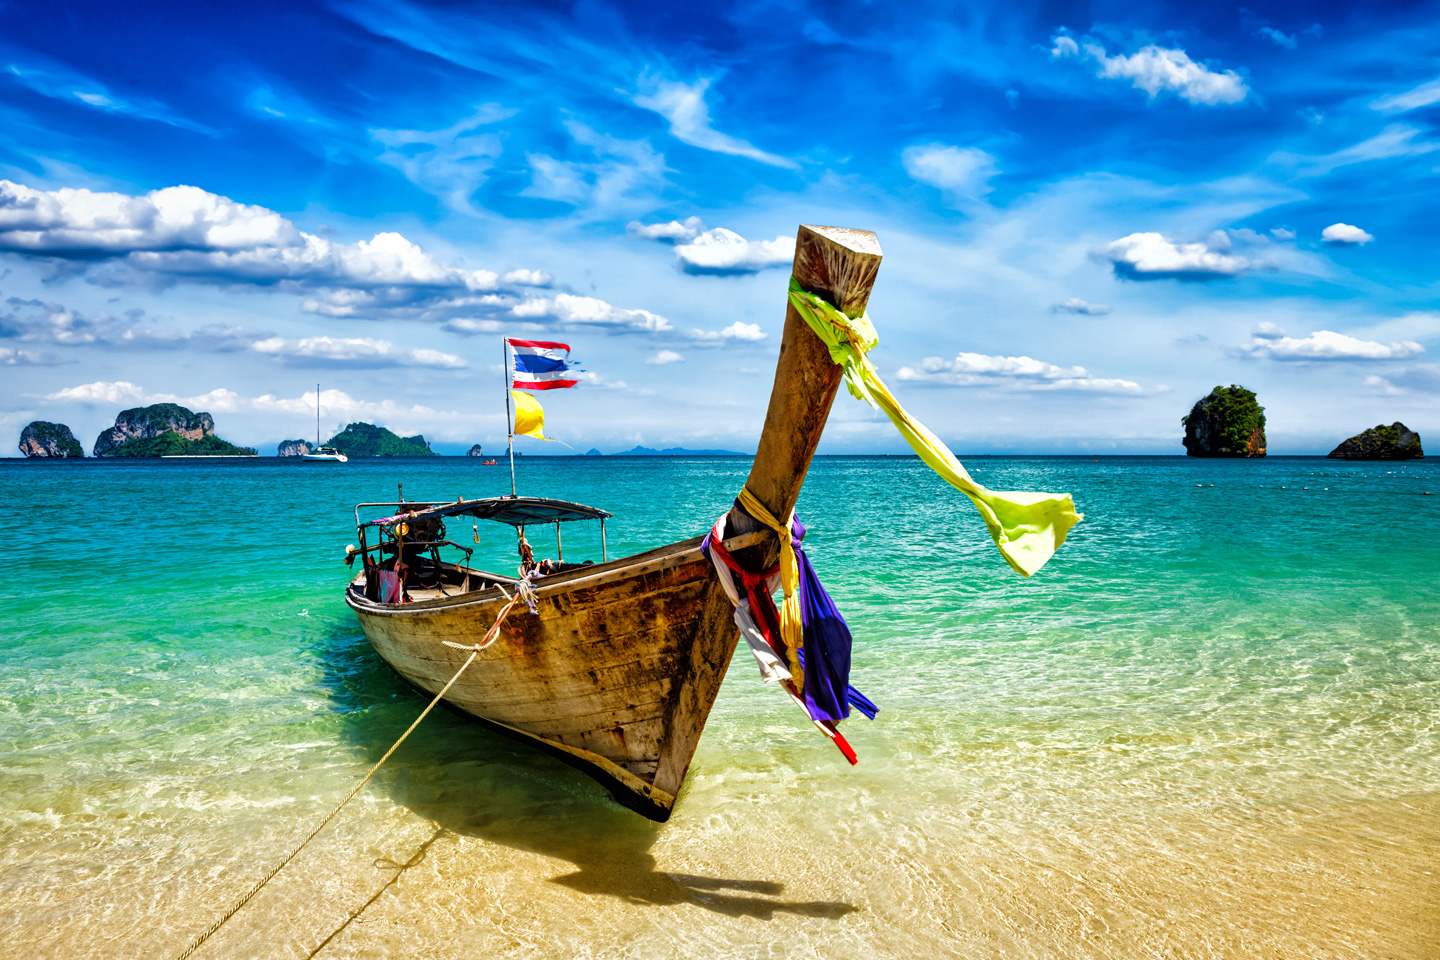 Things to Do in Phuket: Ultimate List of Things to See and